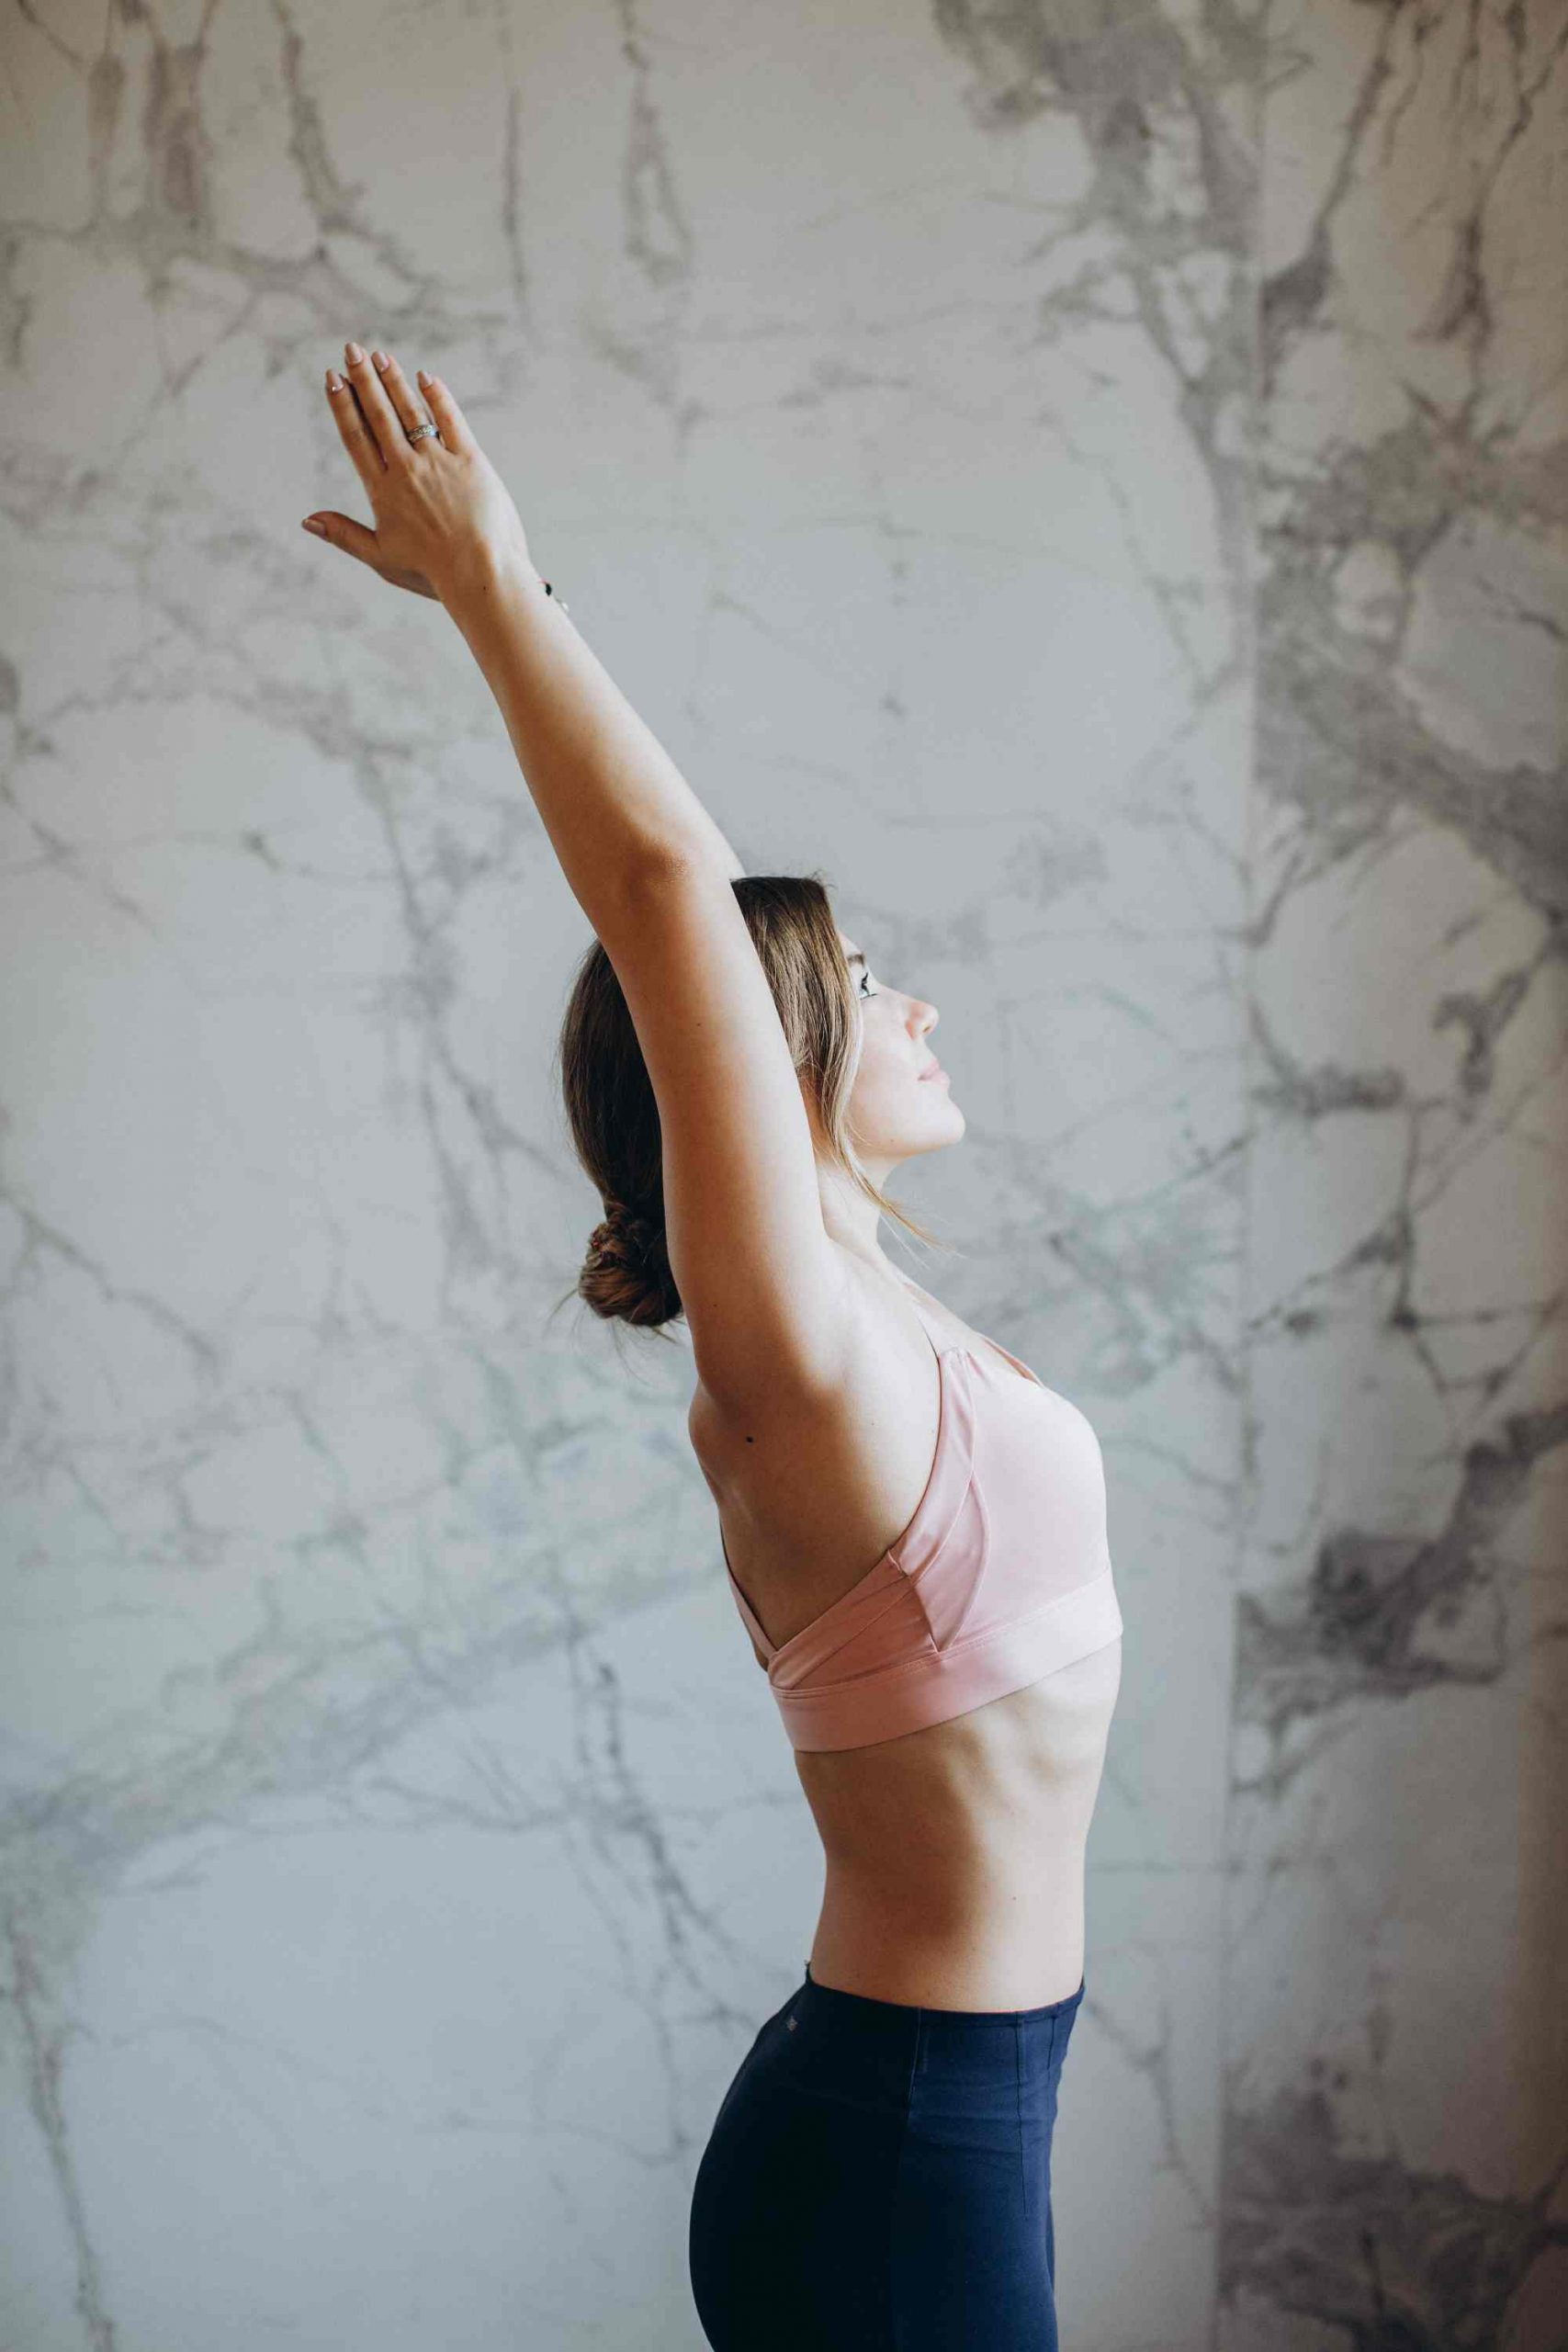 A Women in the Raised Arms Pose